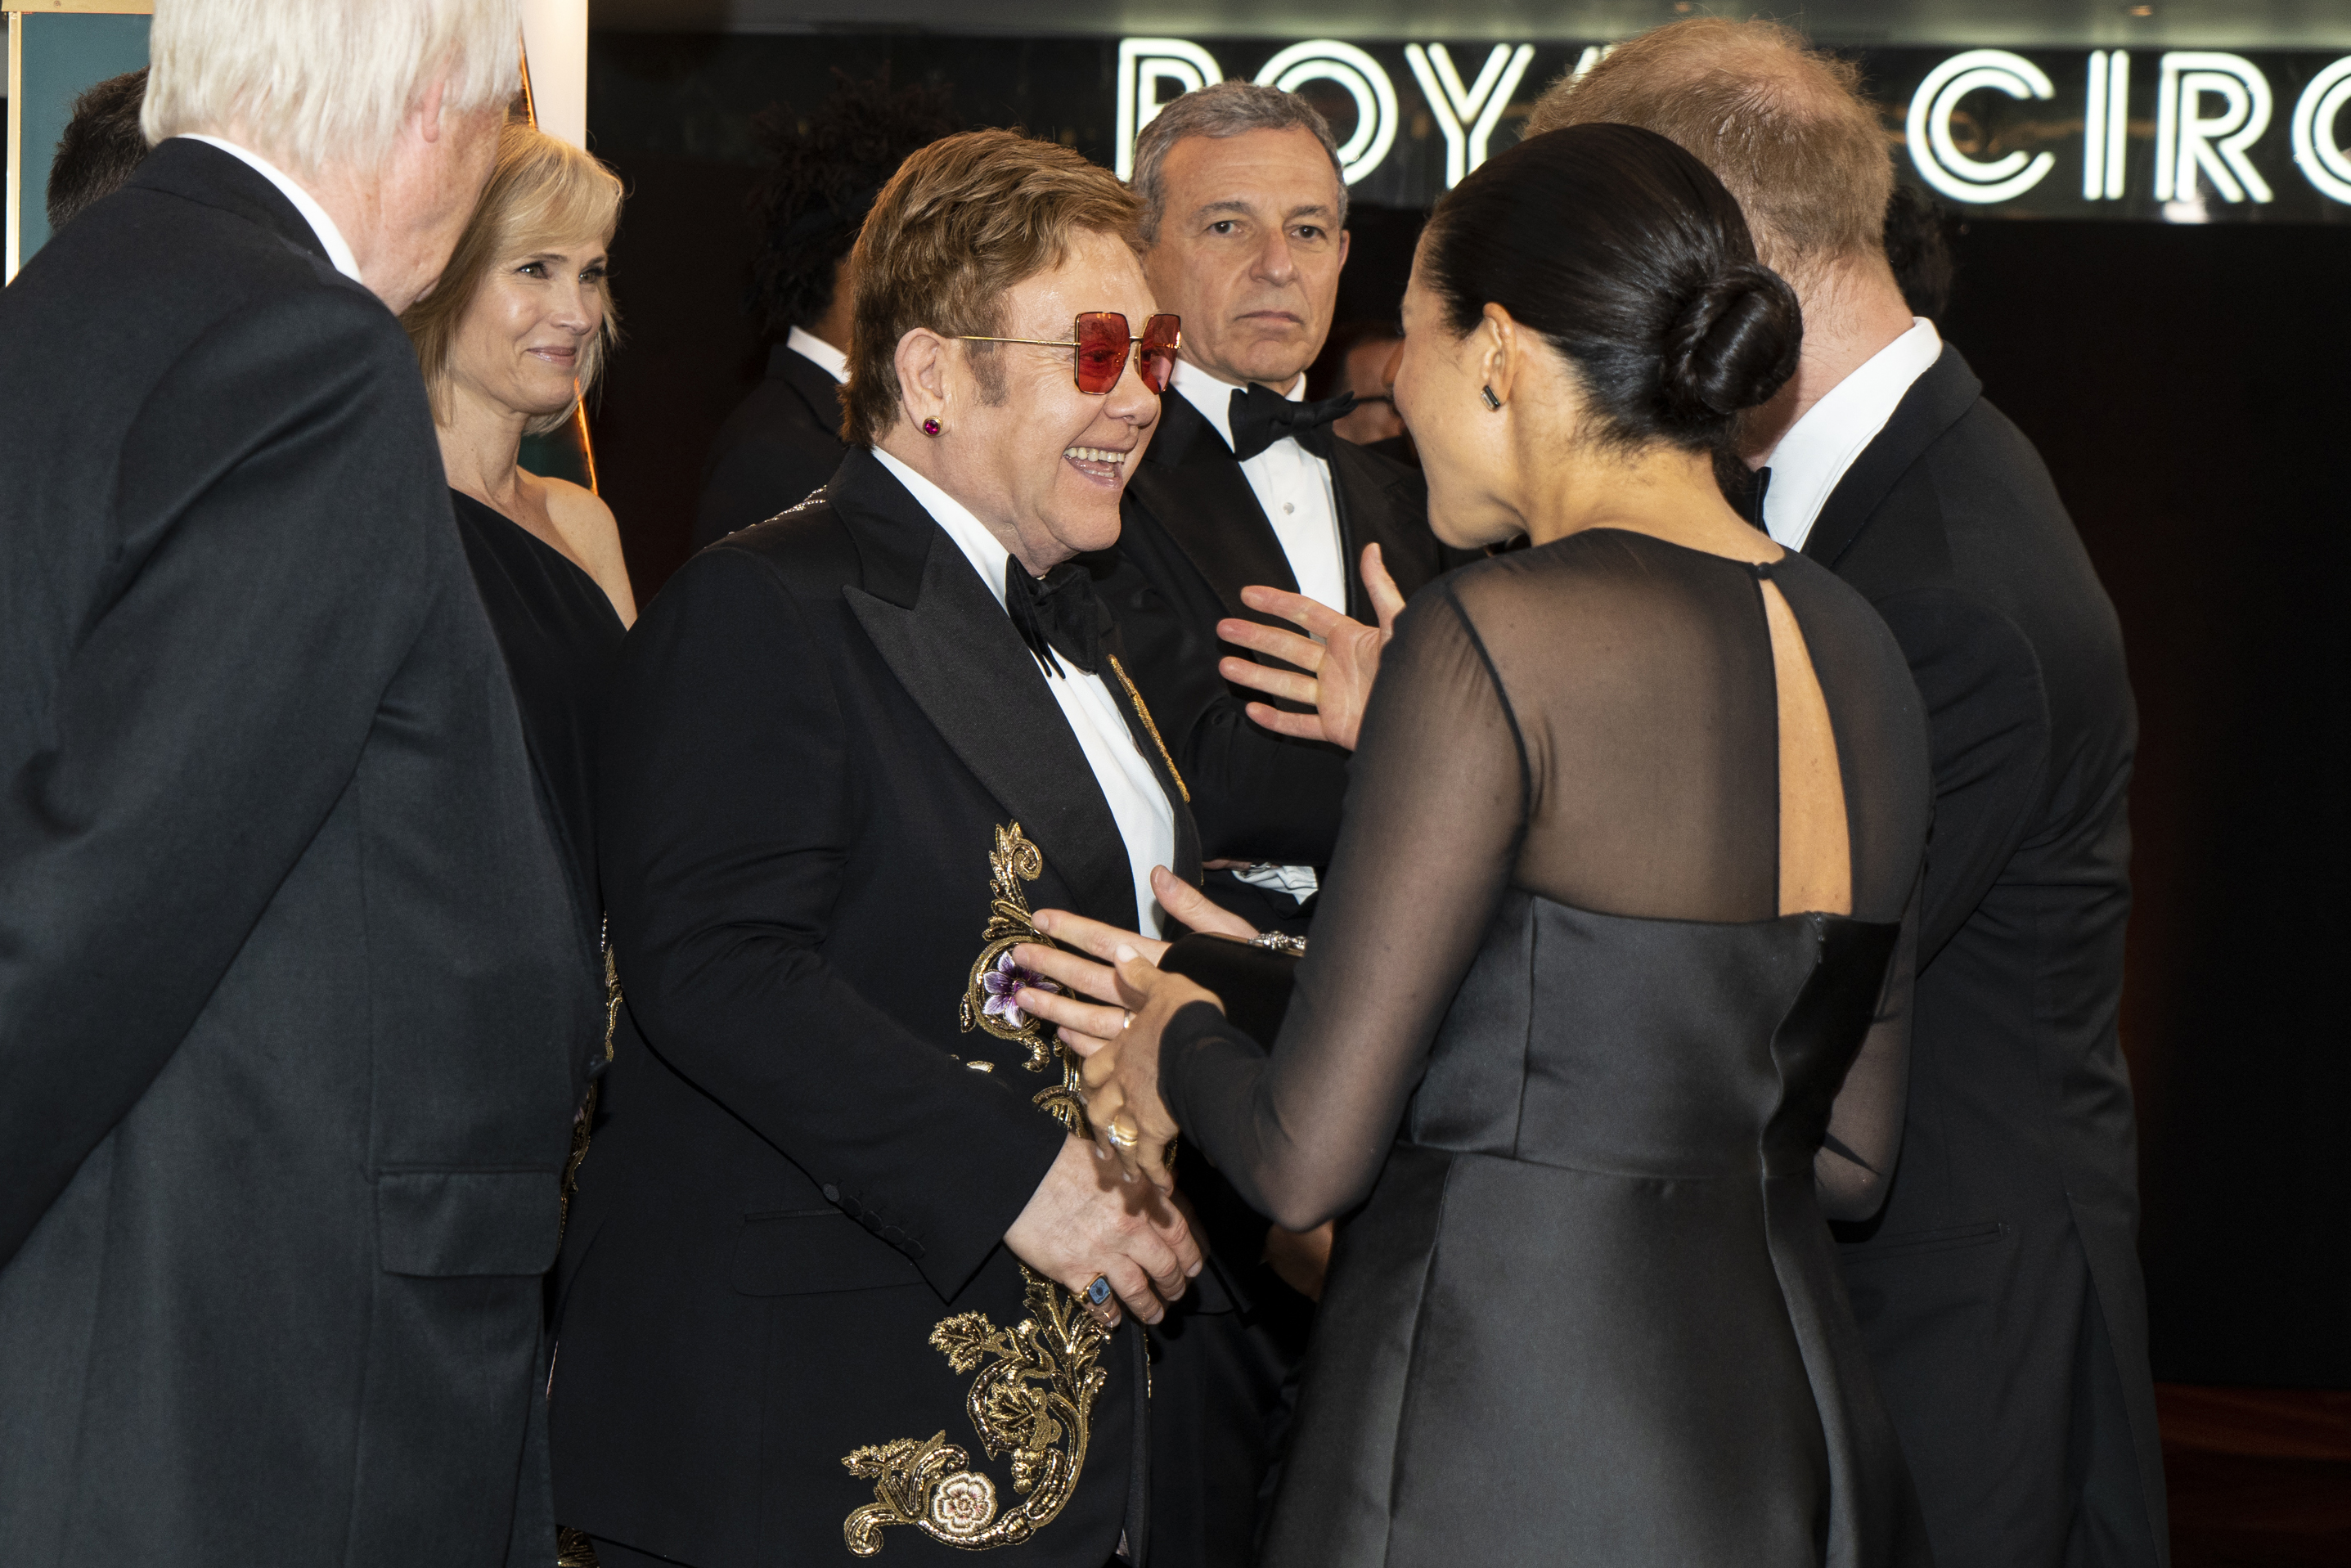 Britain's Prince Harry, Duke of Sussex (R) and Britain's Meghan, Duchess of Sussex (2nd R) chat with British singer-songwriter Elton John (C) as they arrive to attend the European premiere of the film The Lion King in London on July 14, 2019. (Photo credit NIKLAS HALLE'N/AFP via Getty Images)